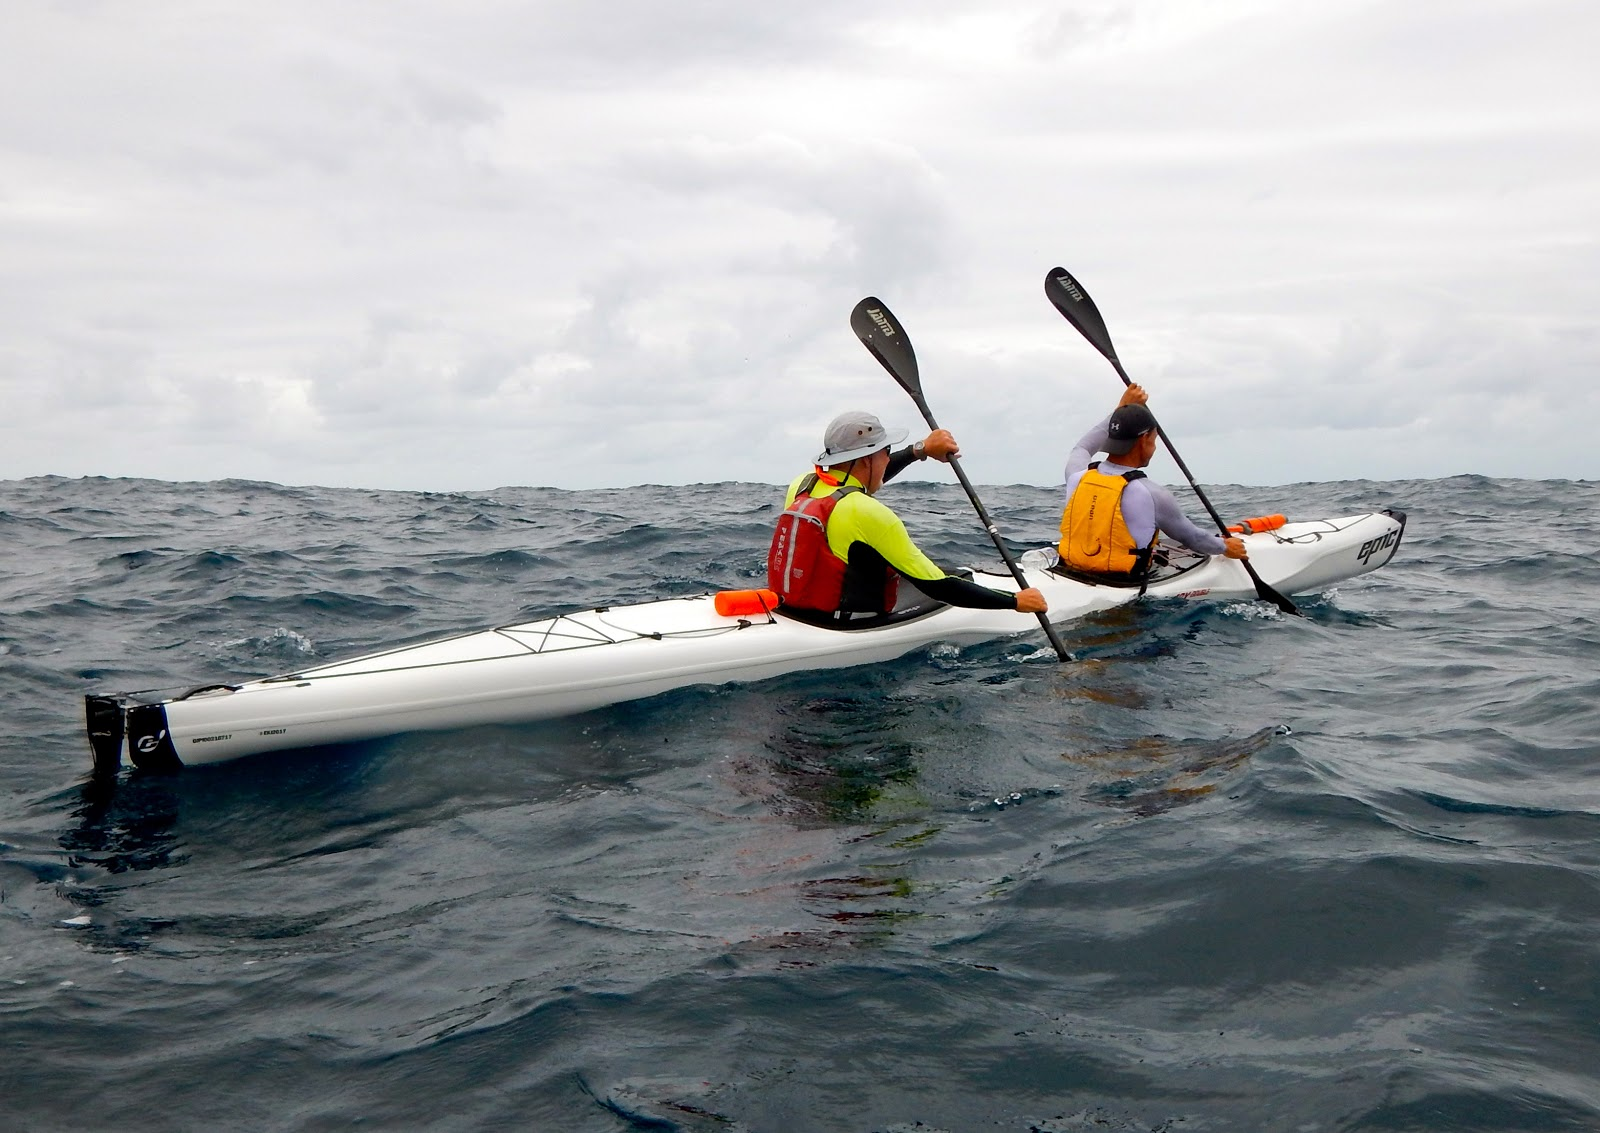 Epic Announced A New Double Touring Sea Kayak Late In 2017 And We Were Quick To Order Demo Seeing The Potential For Light Weight Stable Fast